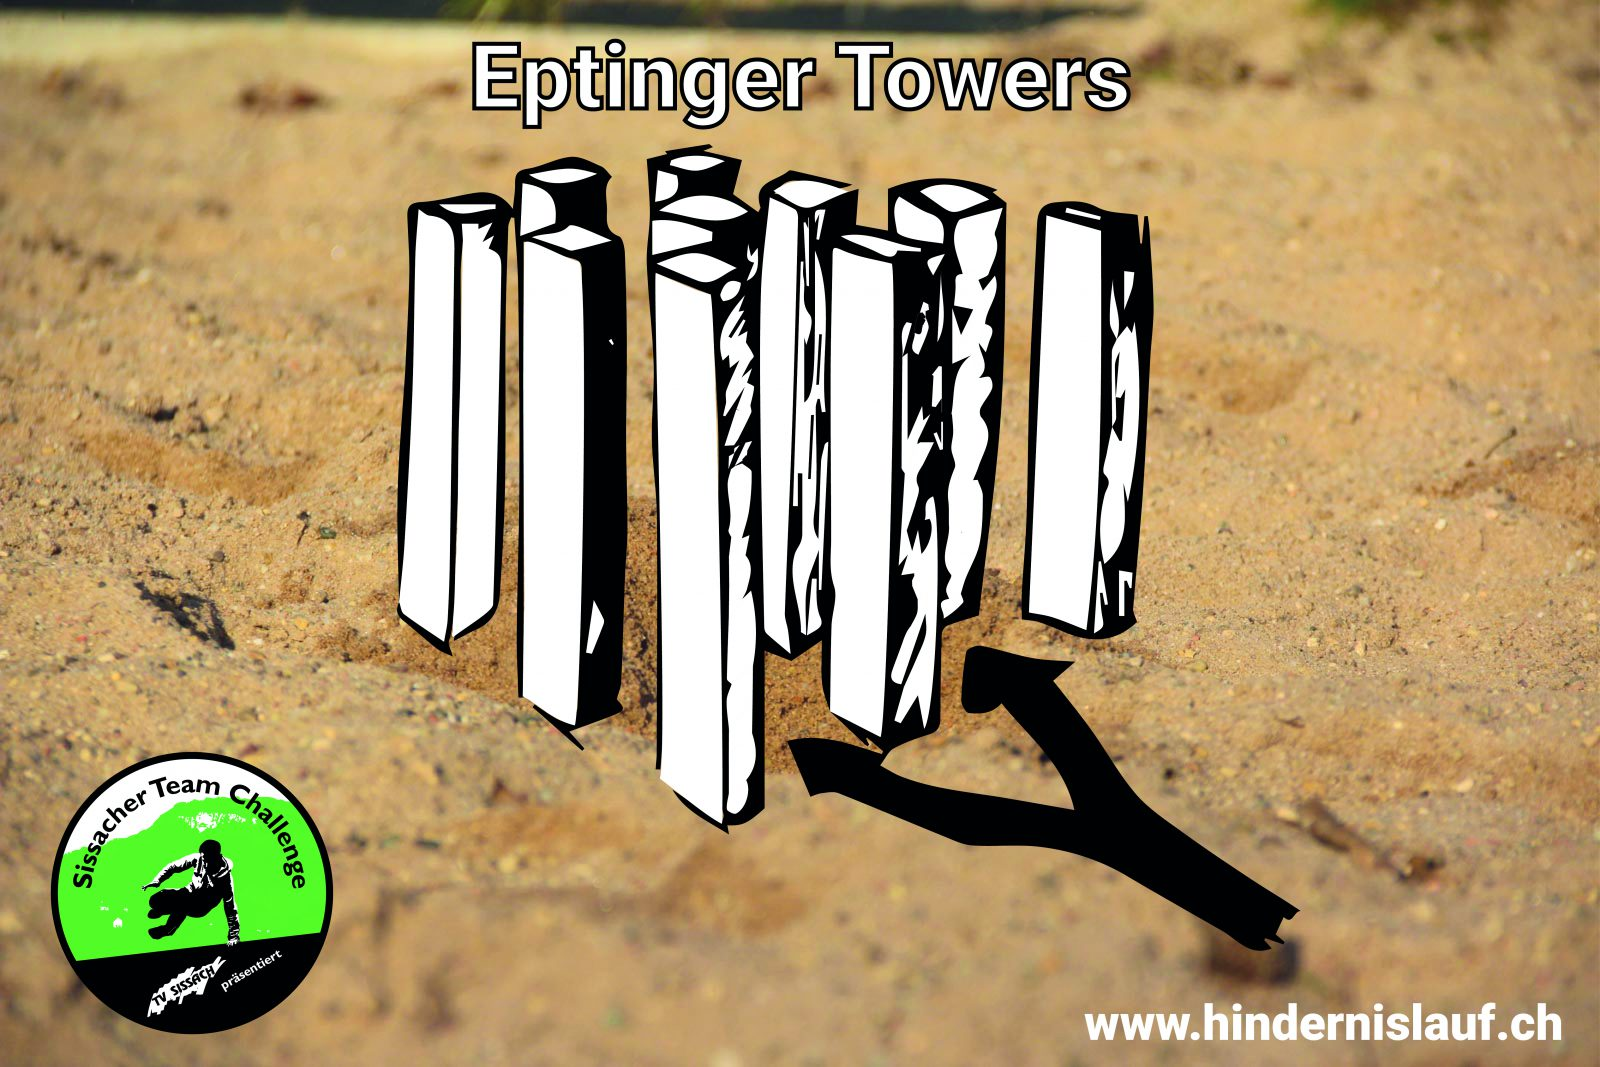 Eptinger Towers